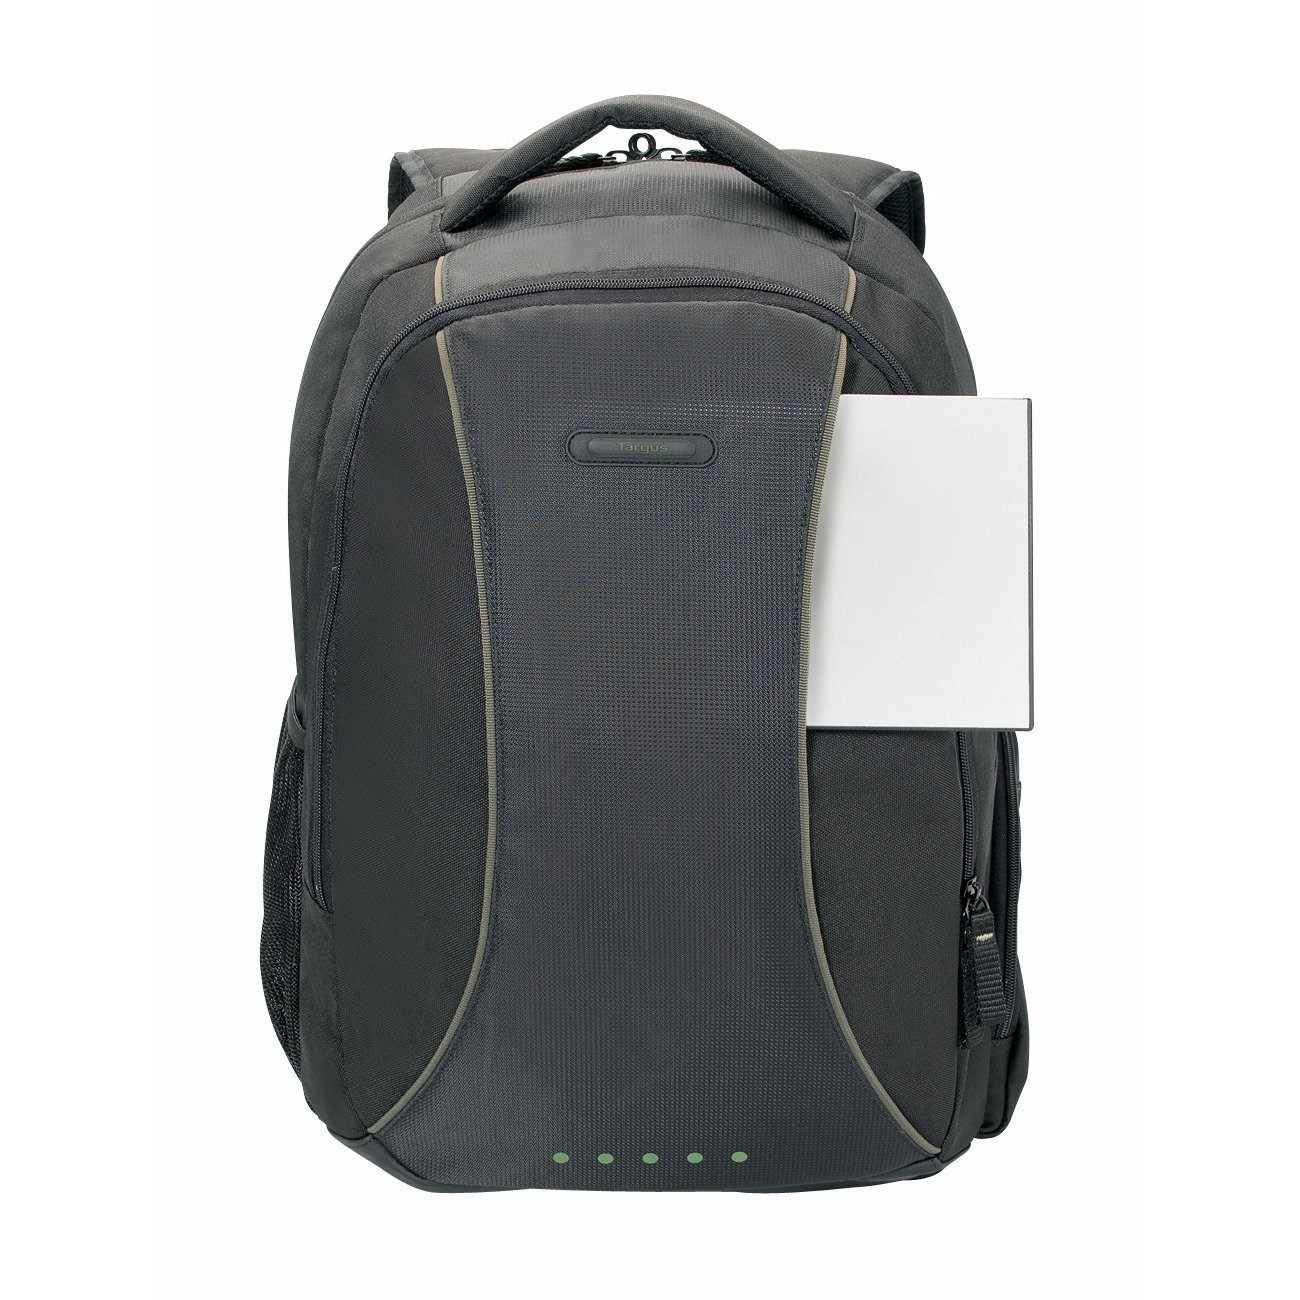 Ba lô Targus Incognito Backpack 15.6 Inch